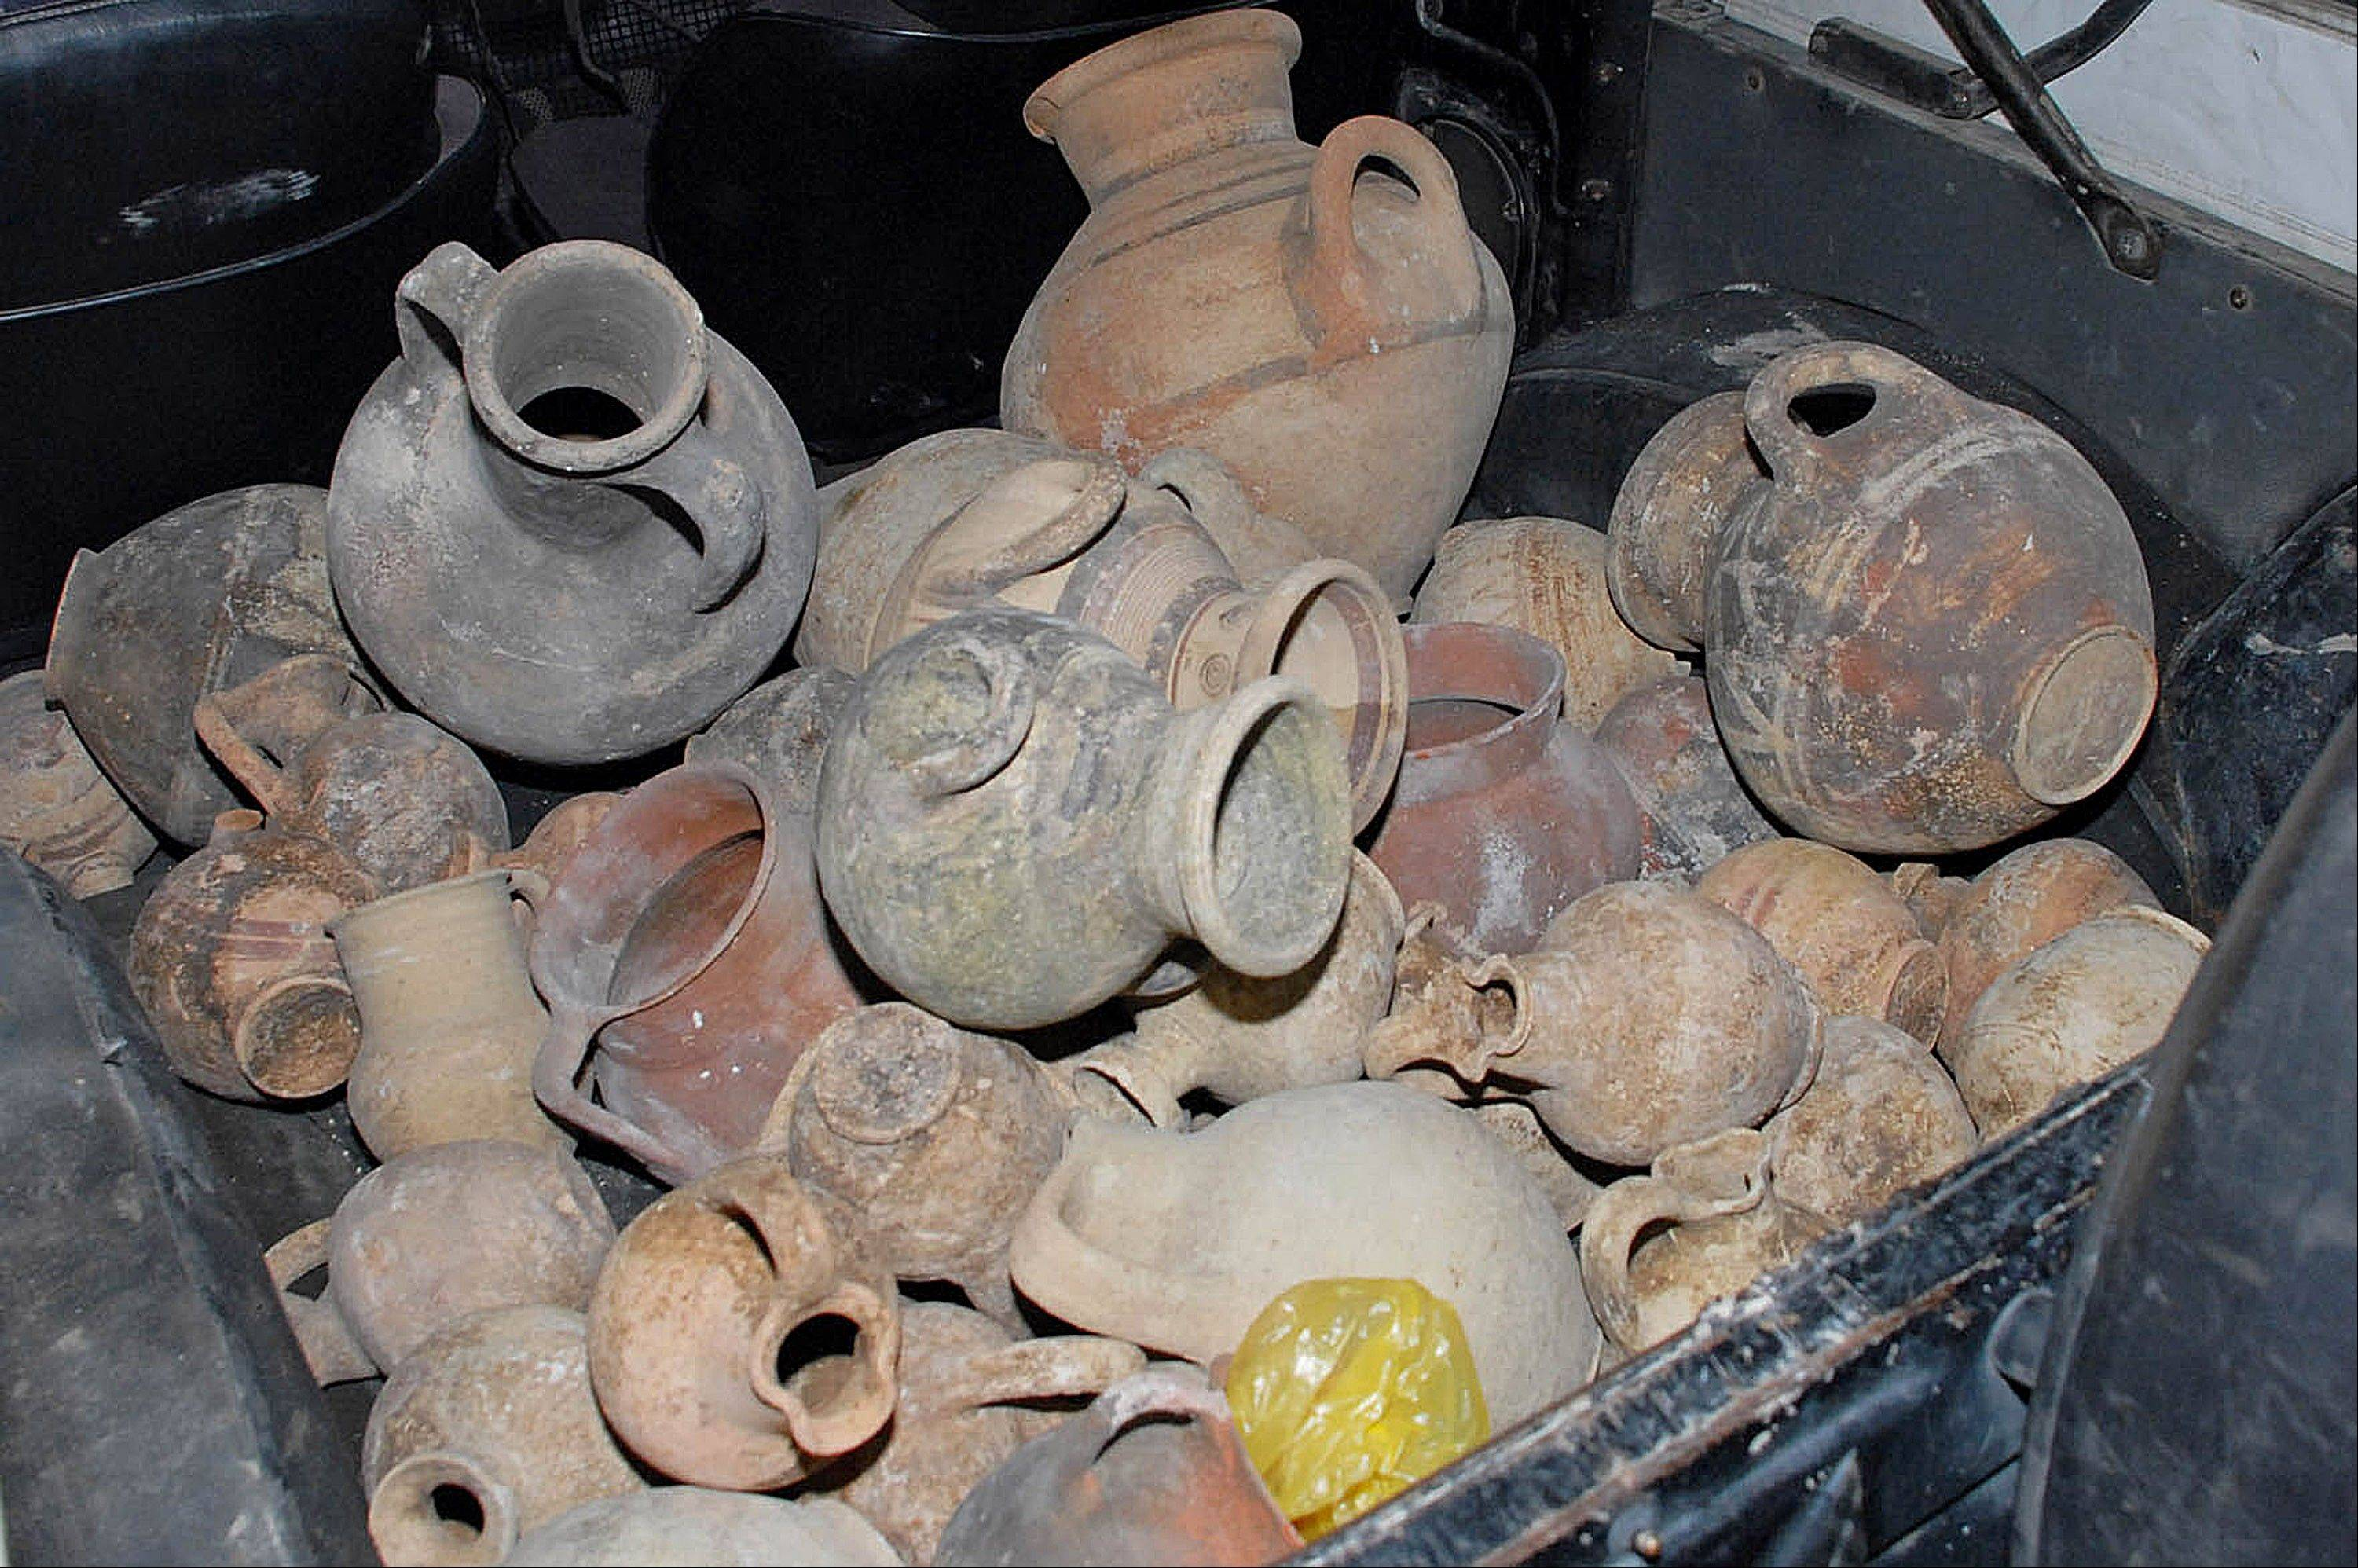 Antiquities seized from smugglers in the southern city of Limassol, Cyprus.